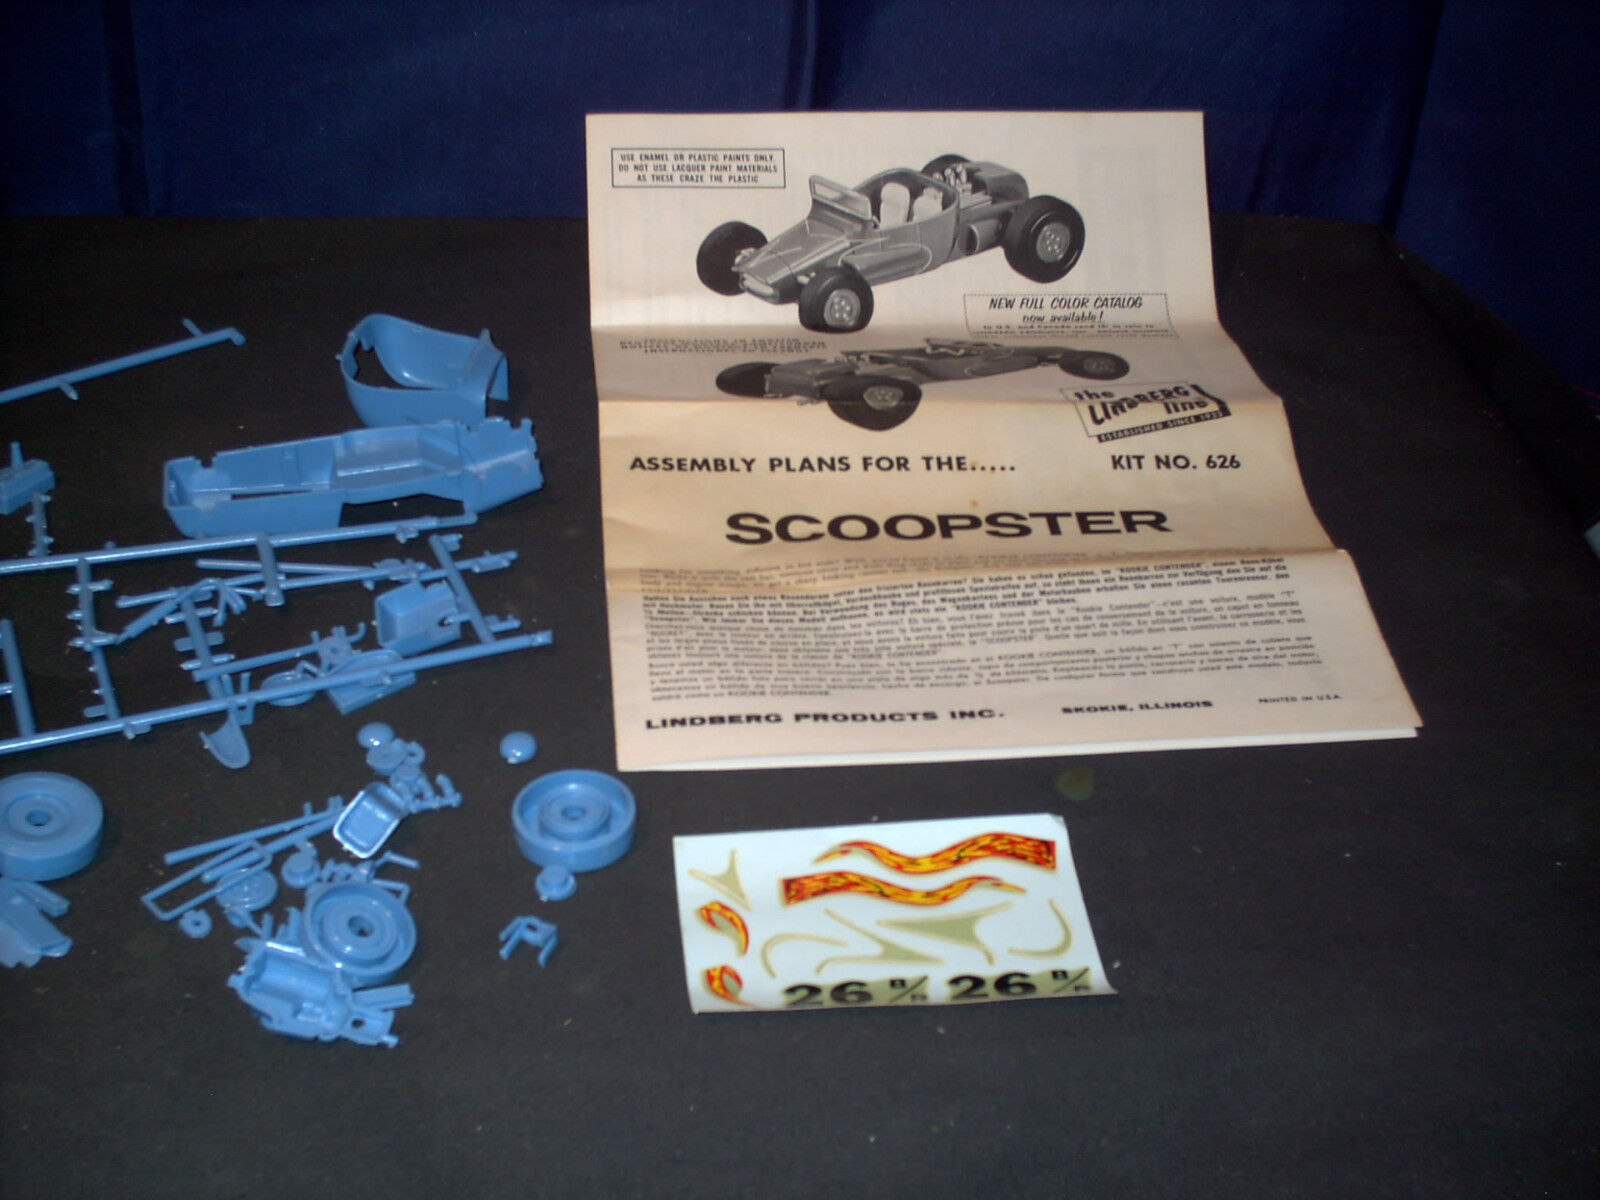 Modell - kit scoopster hot rod